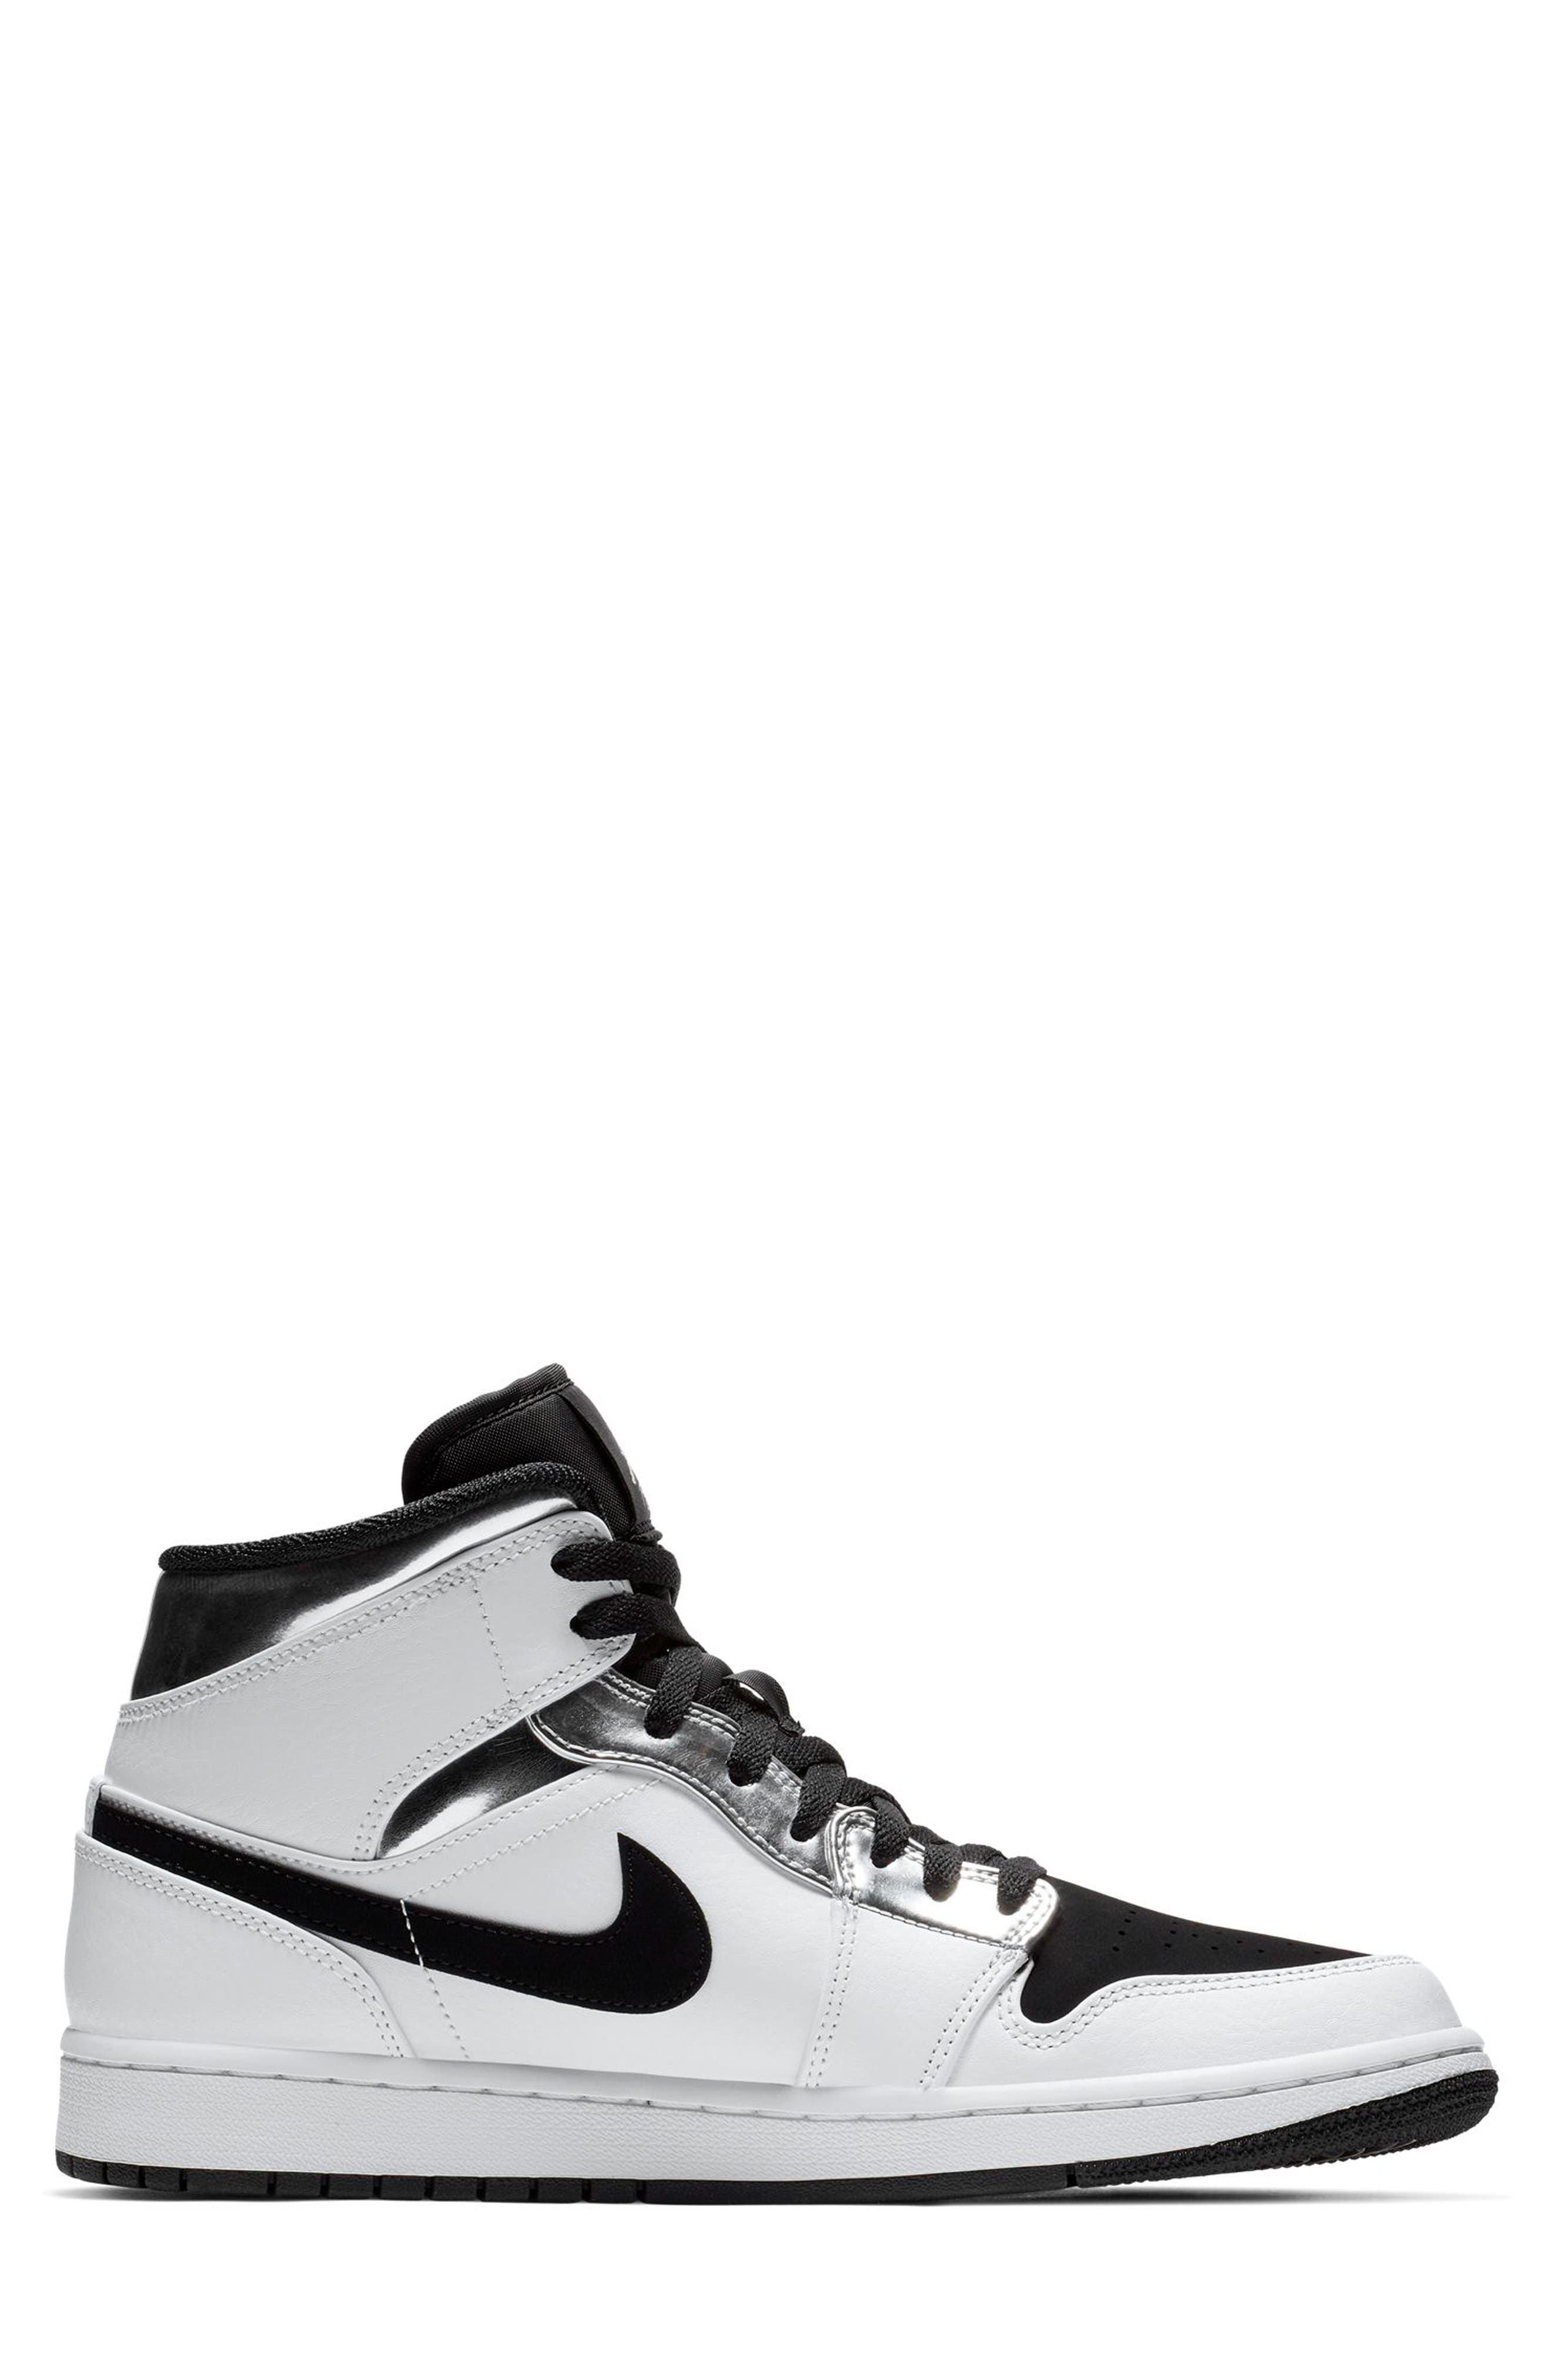 NIKE, 'Air Jordan 1 Mid' Sneaker, Alternate thumbnail 2, color, WHITE/ METALLIC SILVER/ BLACK